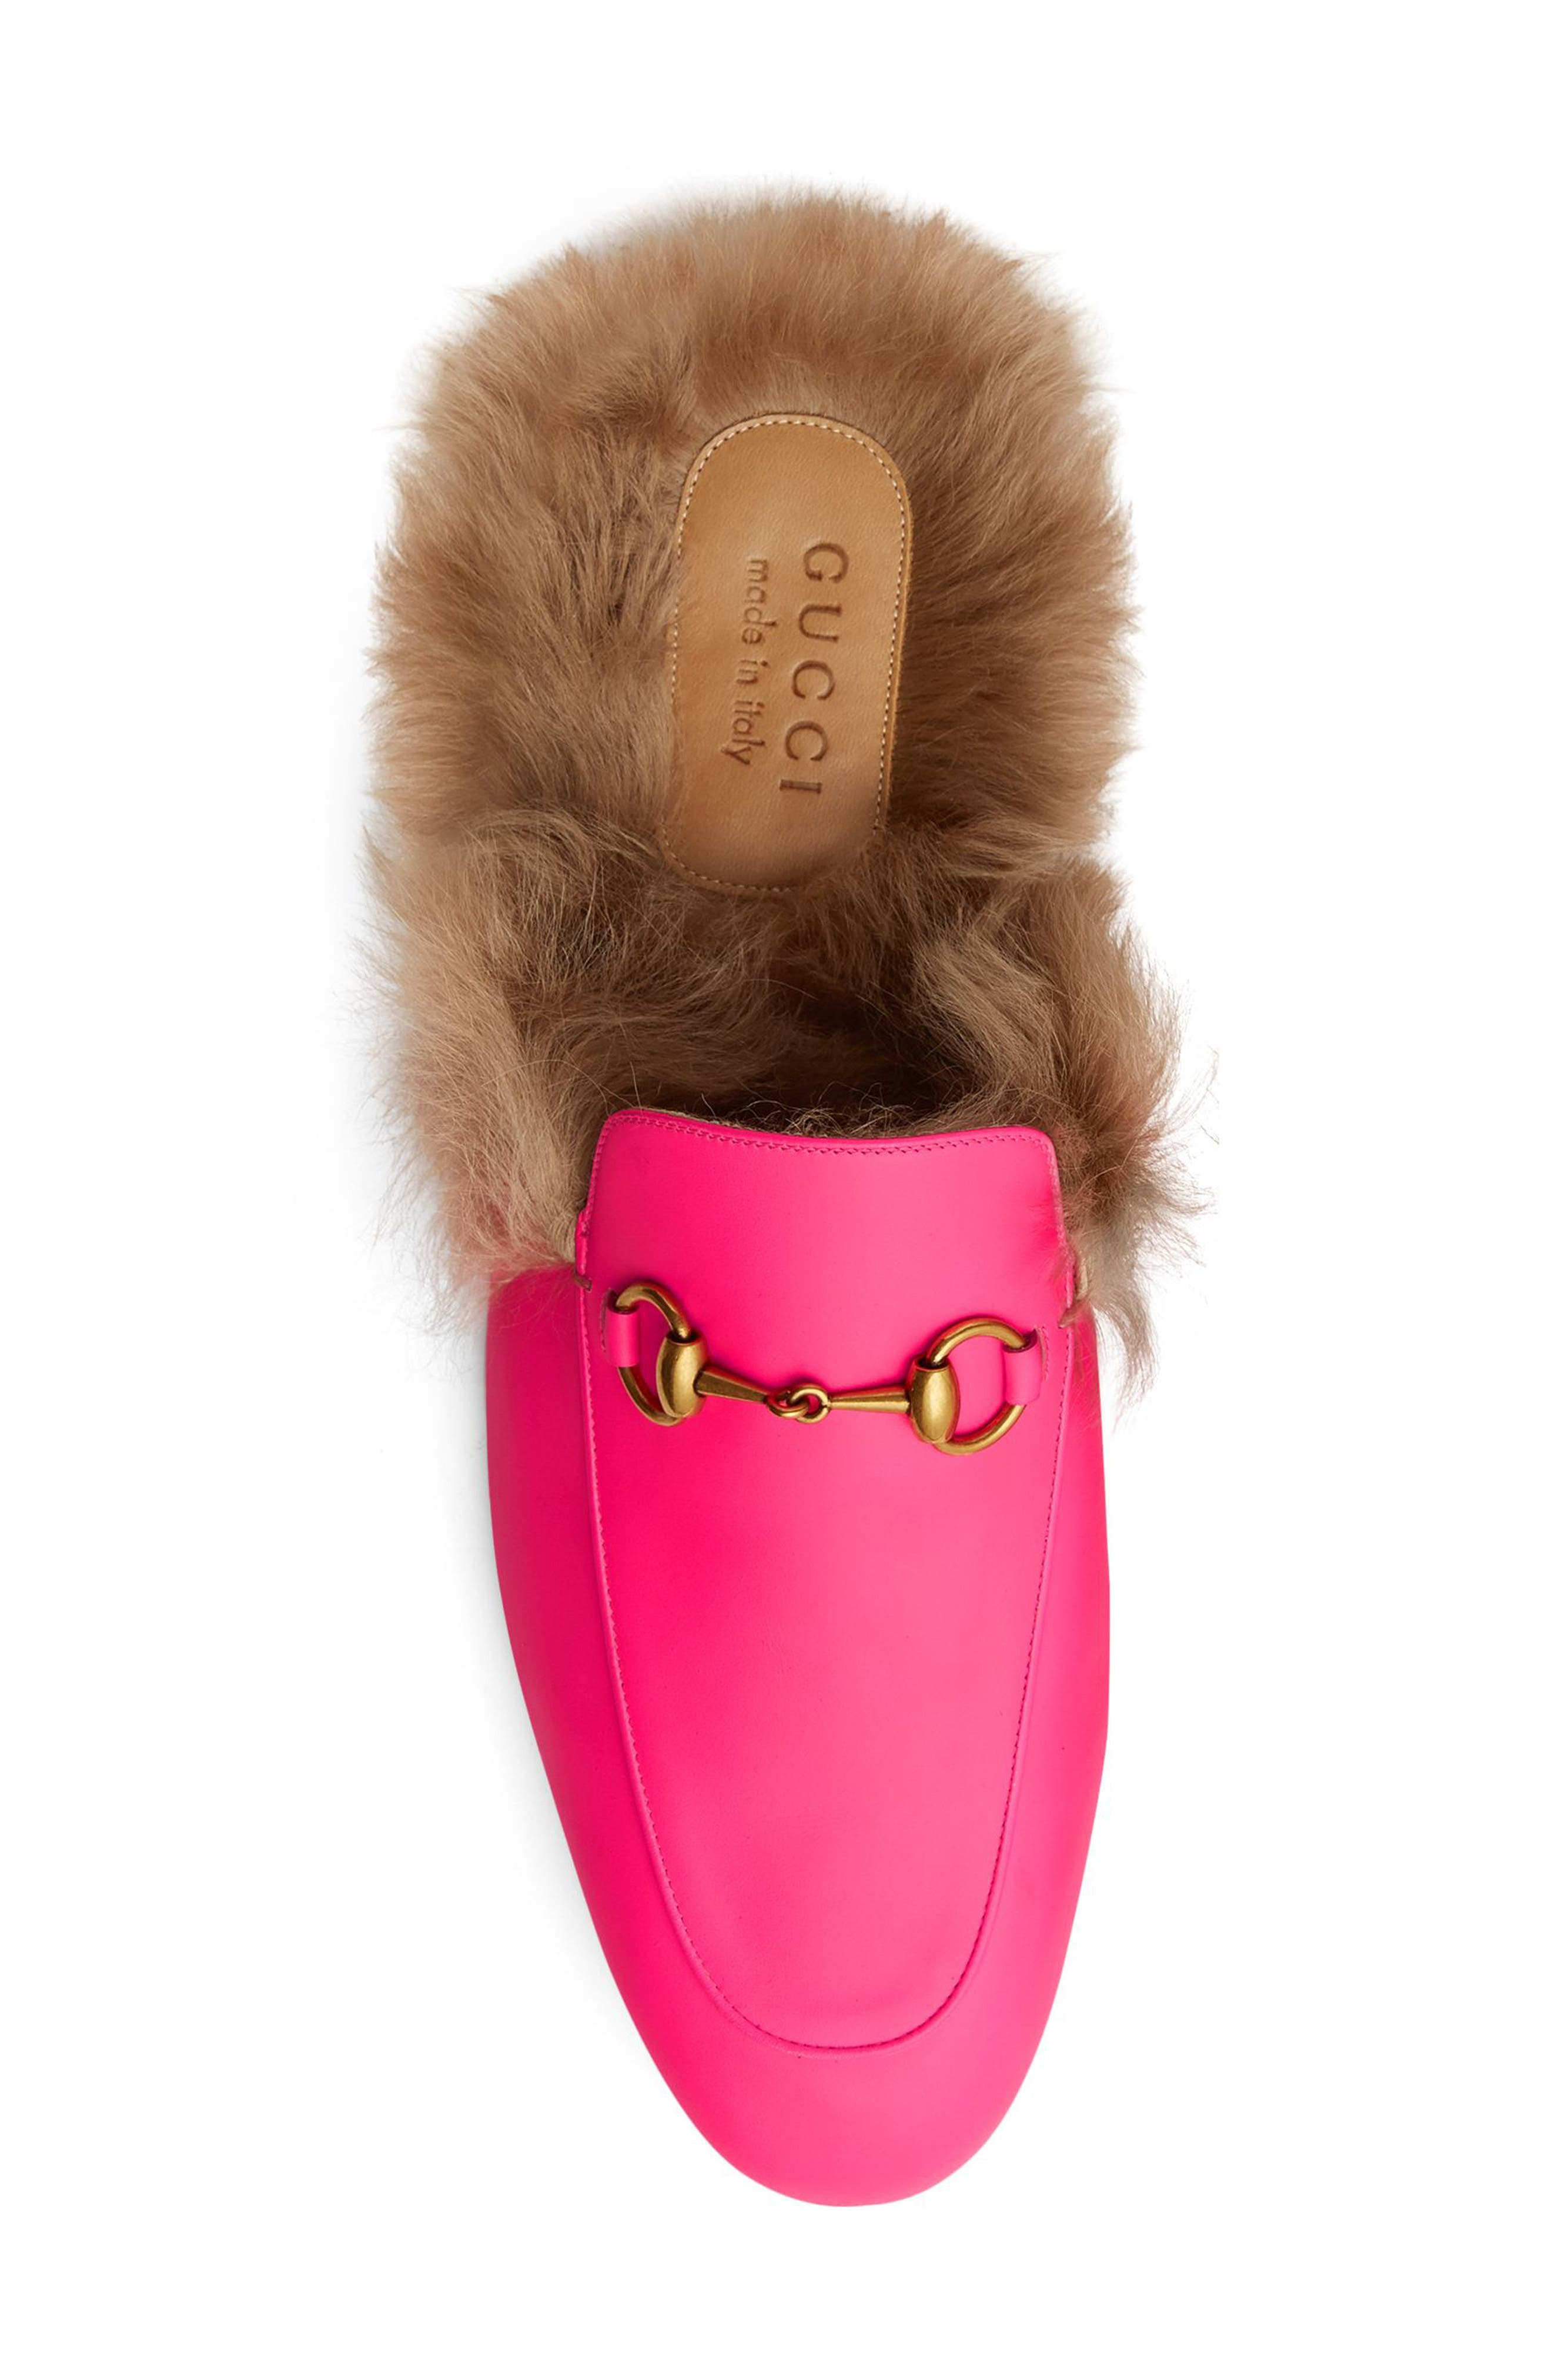 GUCCI, Princetown Genuine Shearling Lined Mule Loafer, Alternate thumbnail 3, color, PINK/ PINK